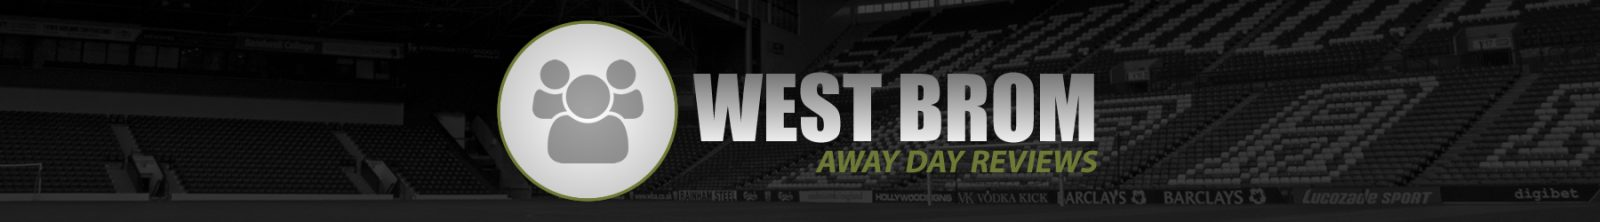 Review West Brom